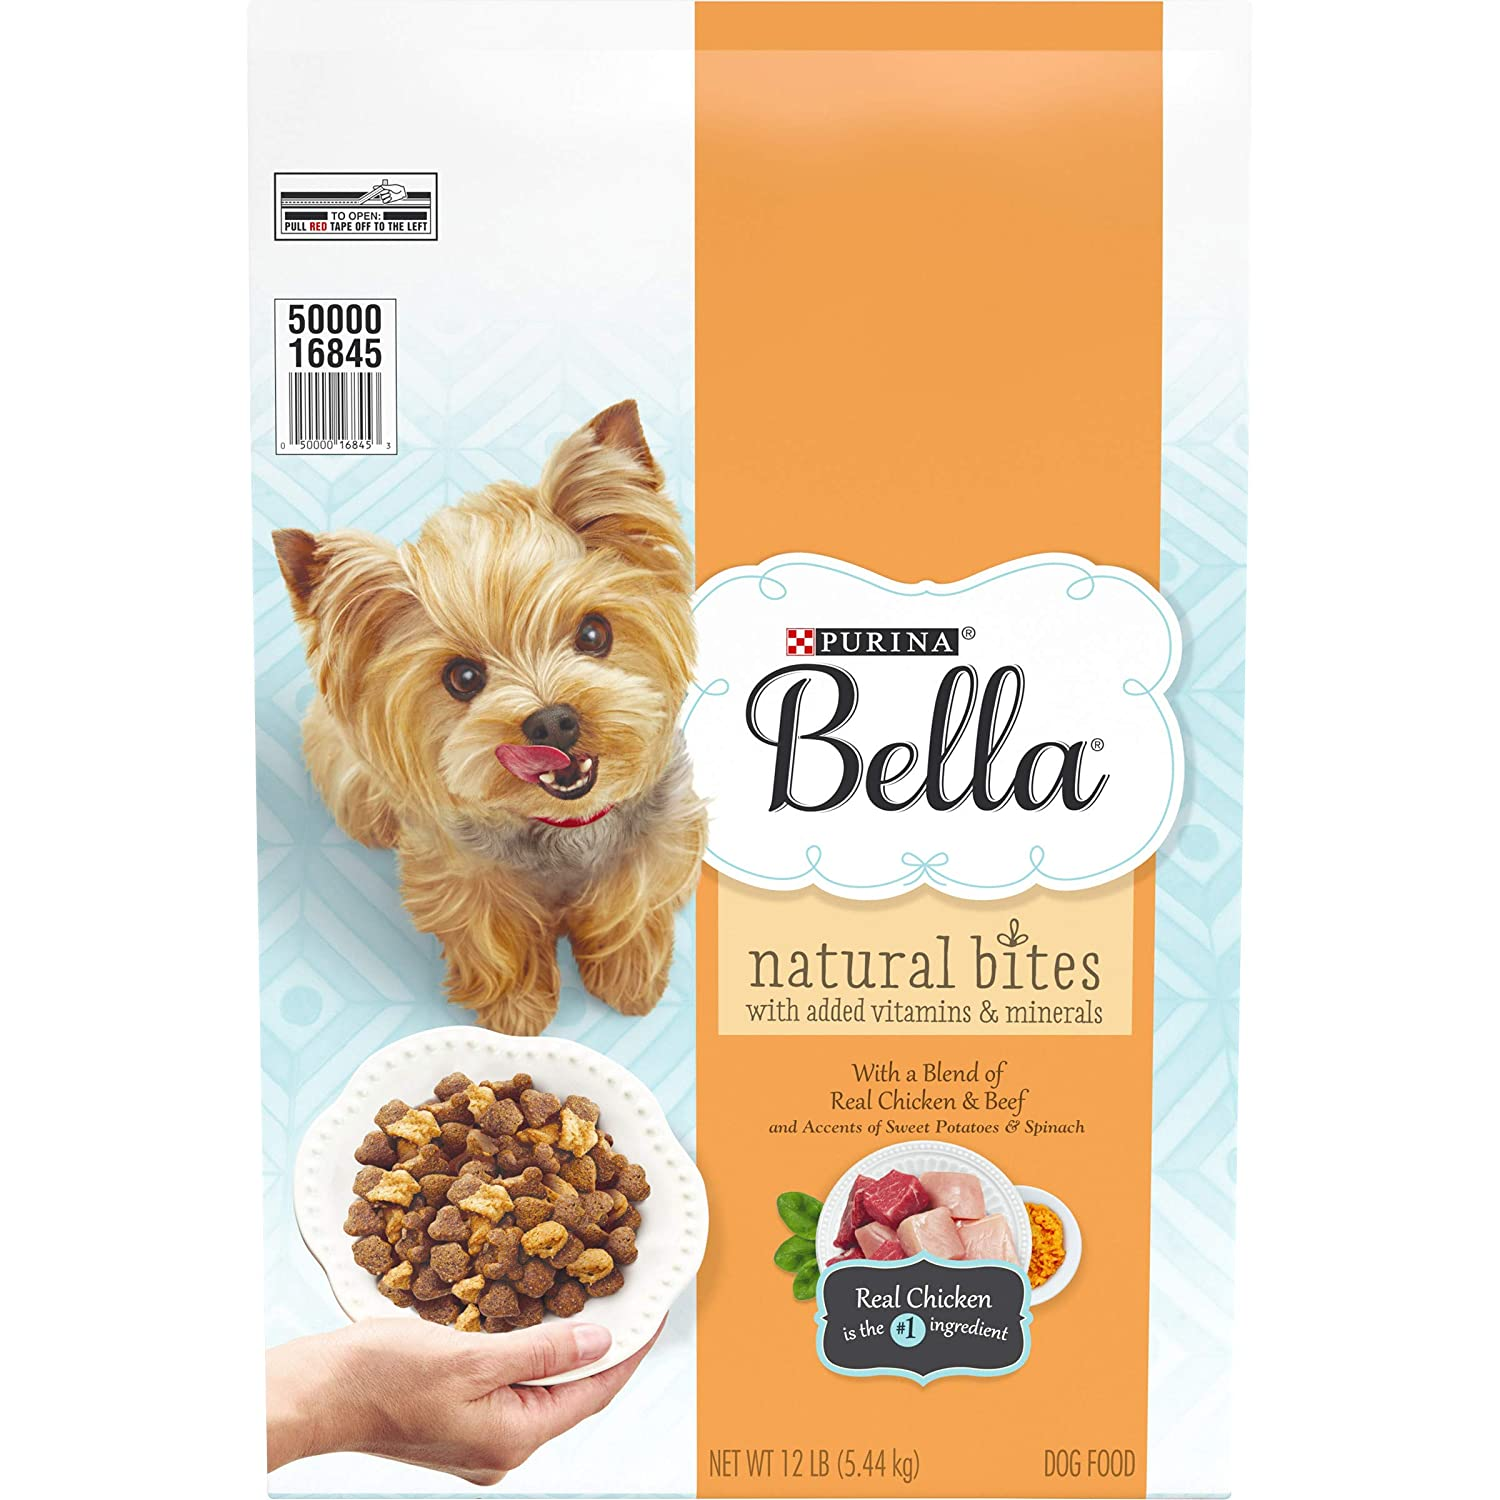 3.Purina Bella Natural Bites for Small Dogs Adult Dry Dog Food